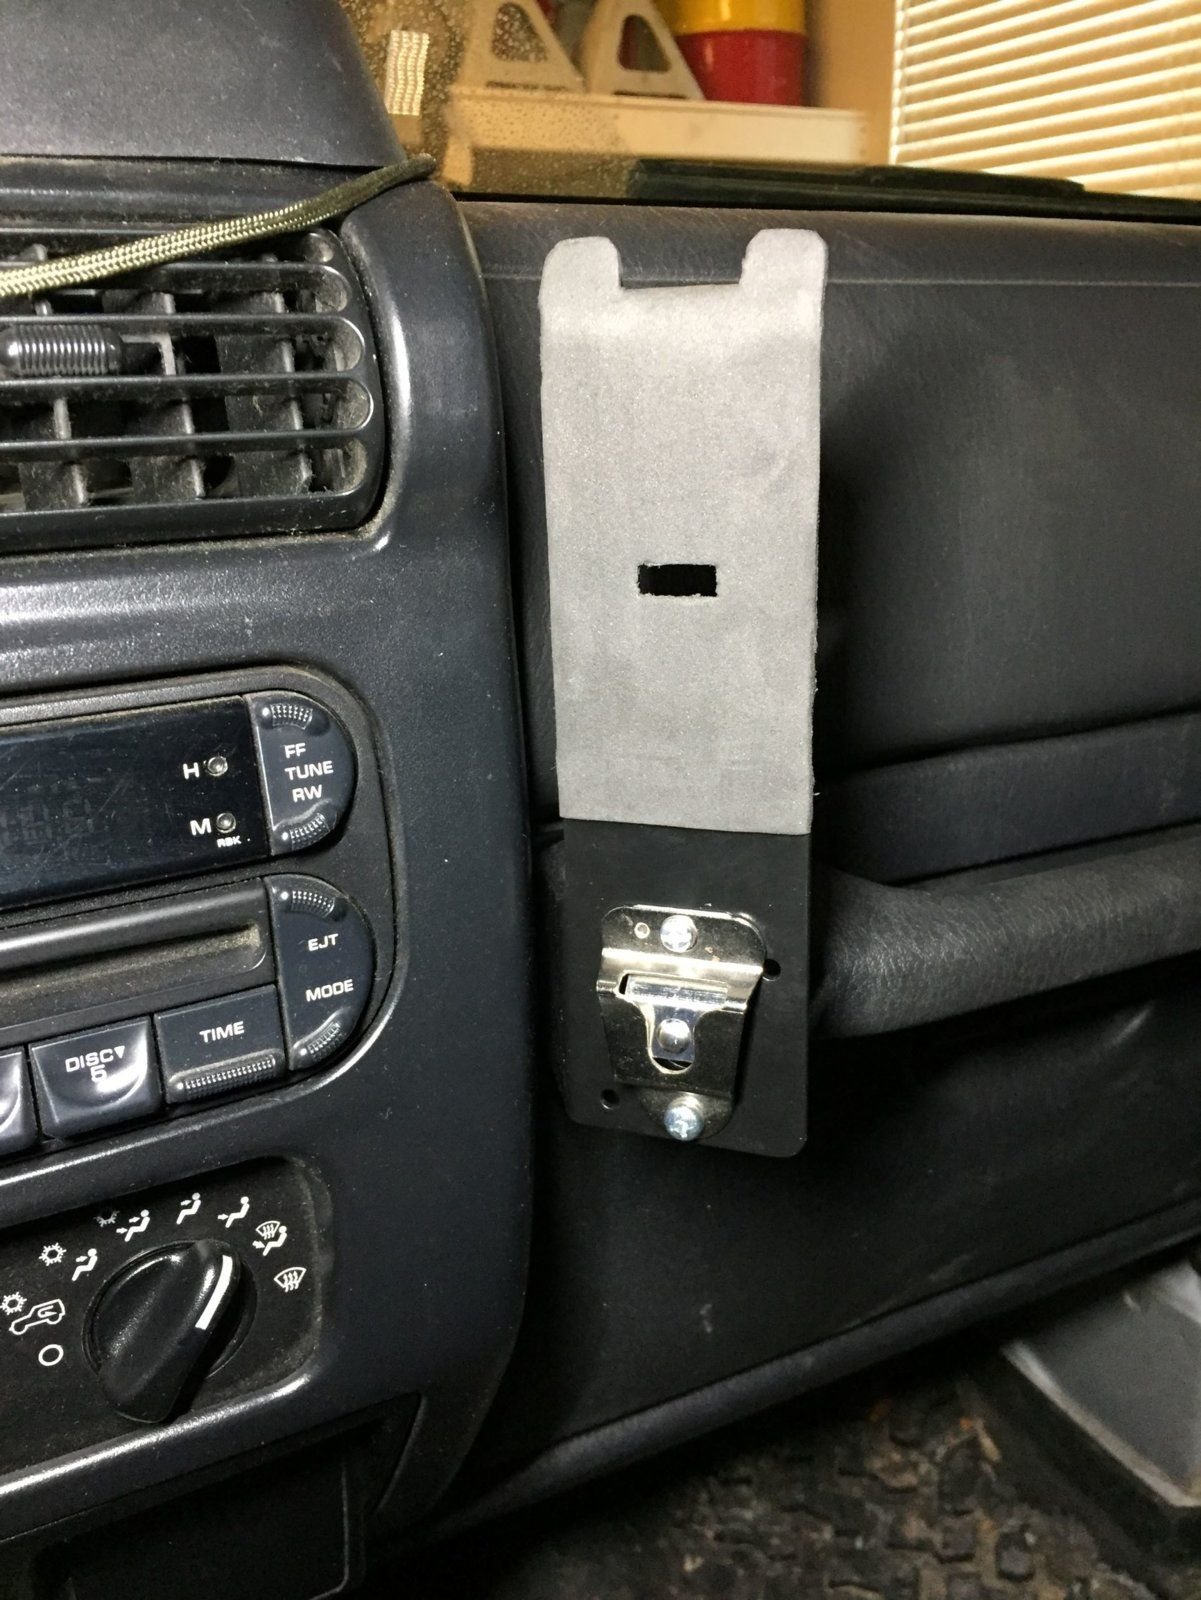 Diy Handheld Ham Radio Mount For Tj Jeep Wrangler Tj Forum In